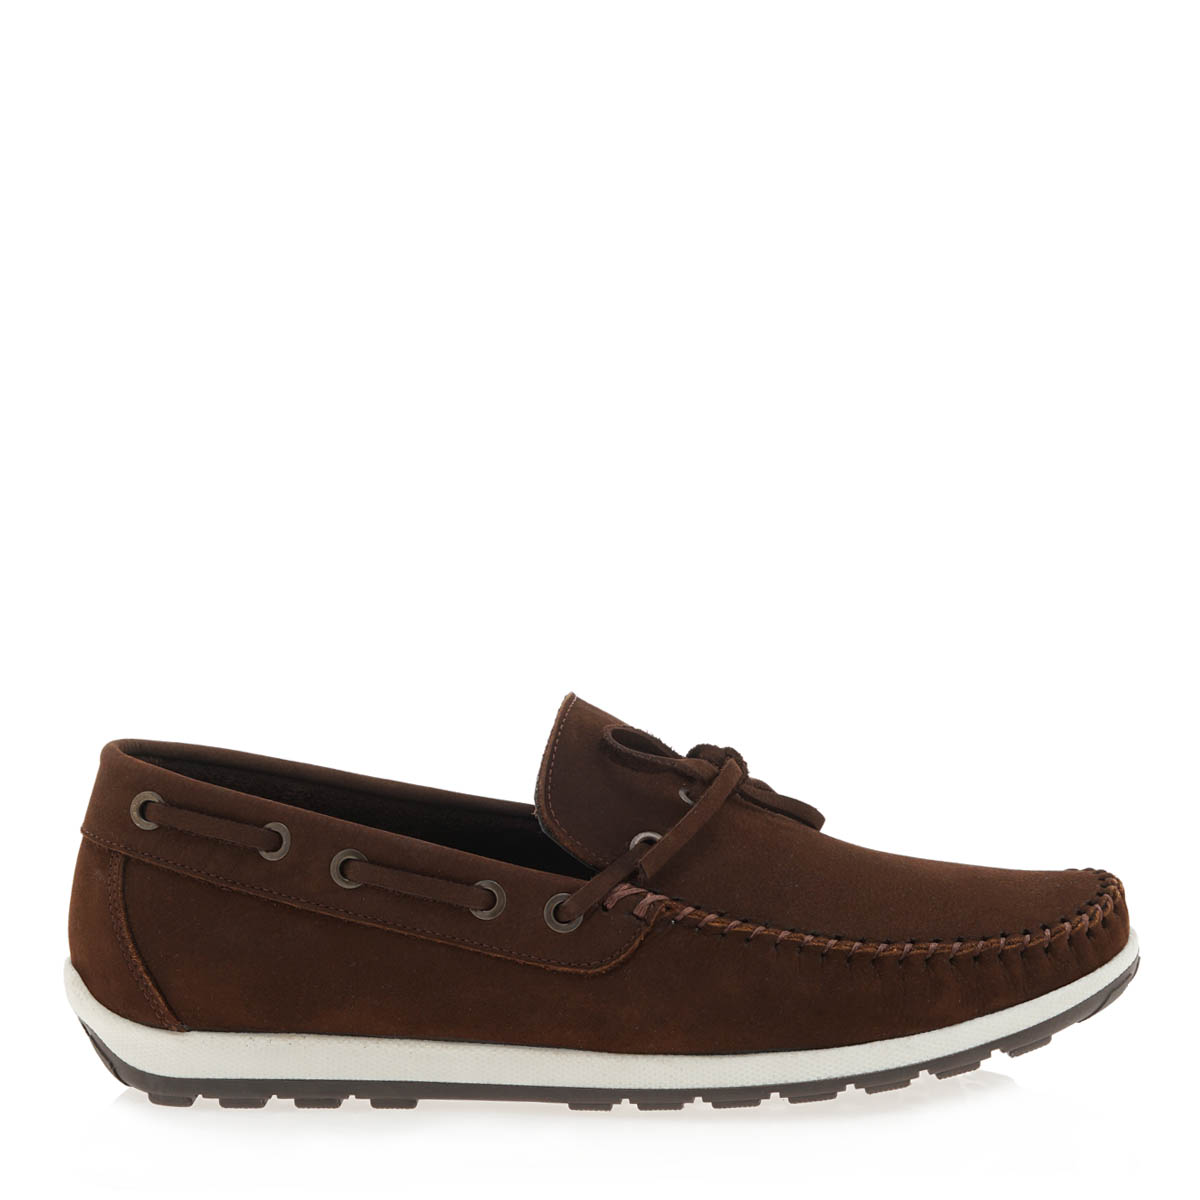 BOAT SHOES σχέδιο: I507U3032 outlet   ανδρικα   boat shoes